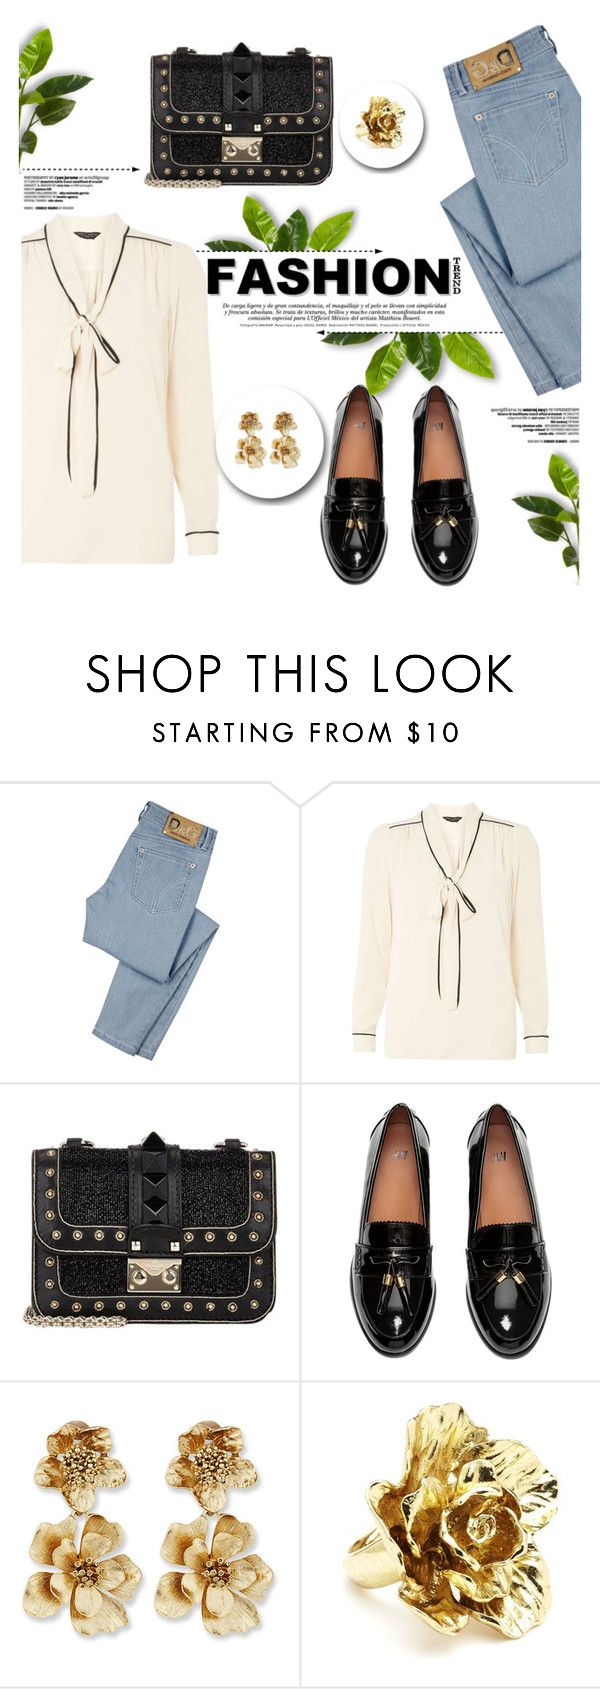 """Fashion"" by yurisnazalieth ❤ liked on Polyvore featuring D&G, Dorothy Perkins, H&M and Oscar de la Renta"